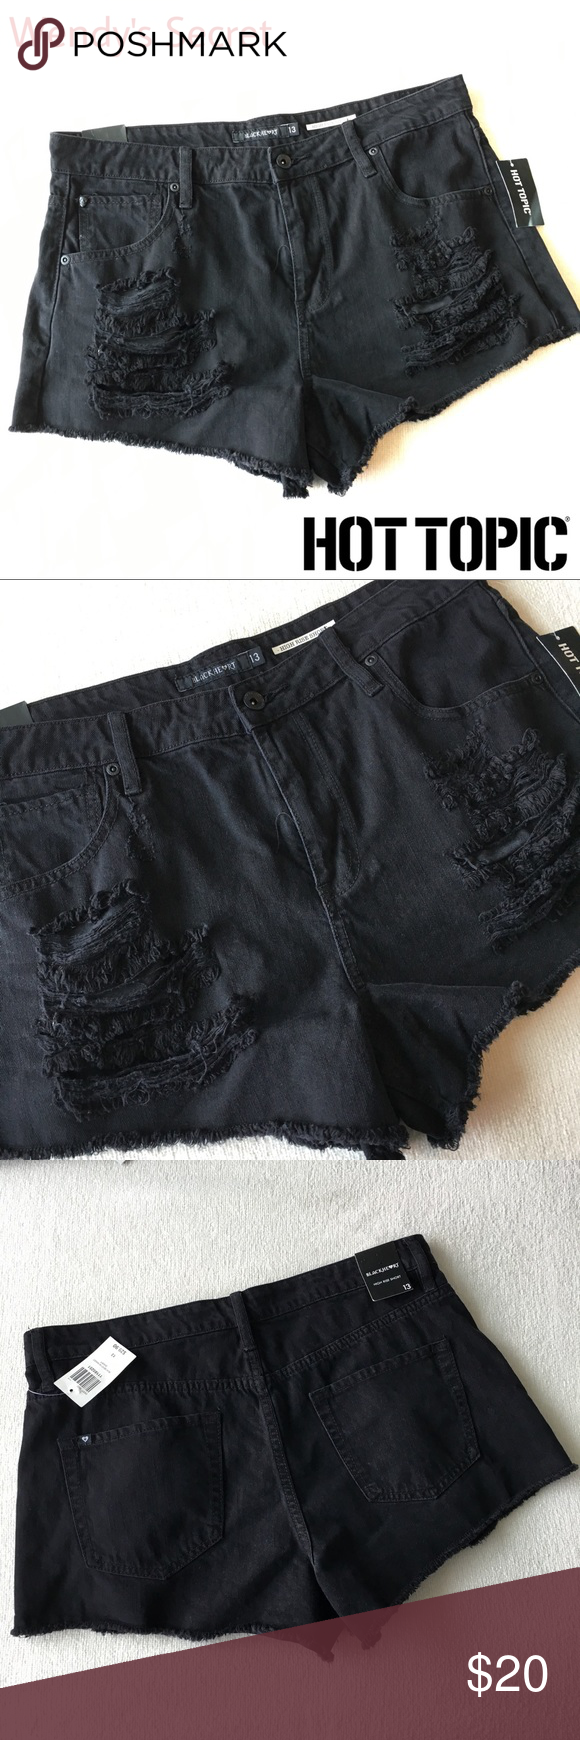 🆕 Hot Topic Distressed High Waist Black Shorts New with tags Hot Topic Distre…